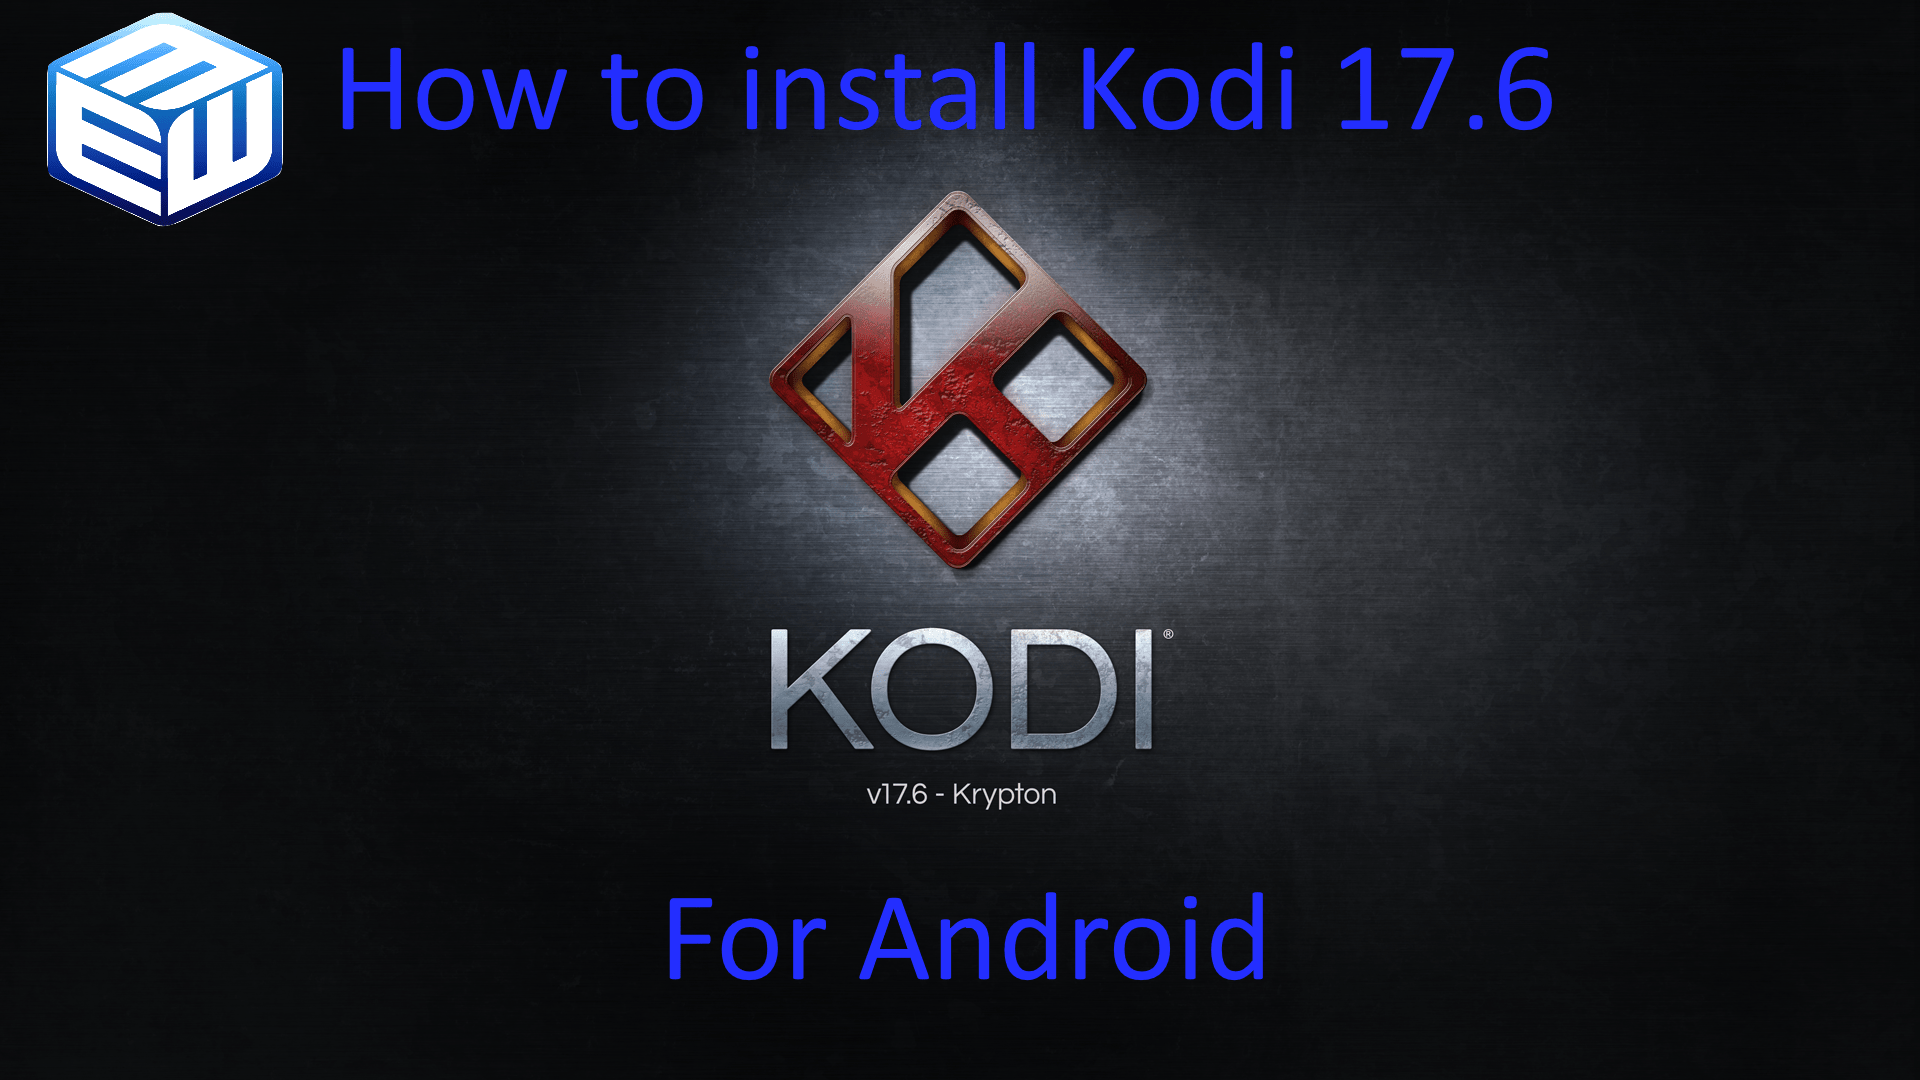 Guide install the latest version of Kodi 17.6 for Android